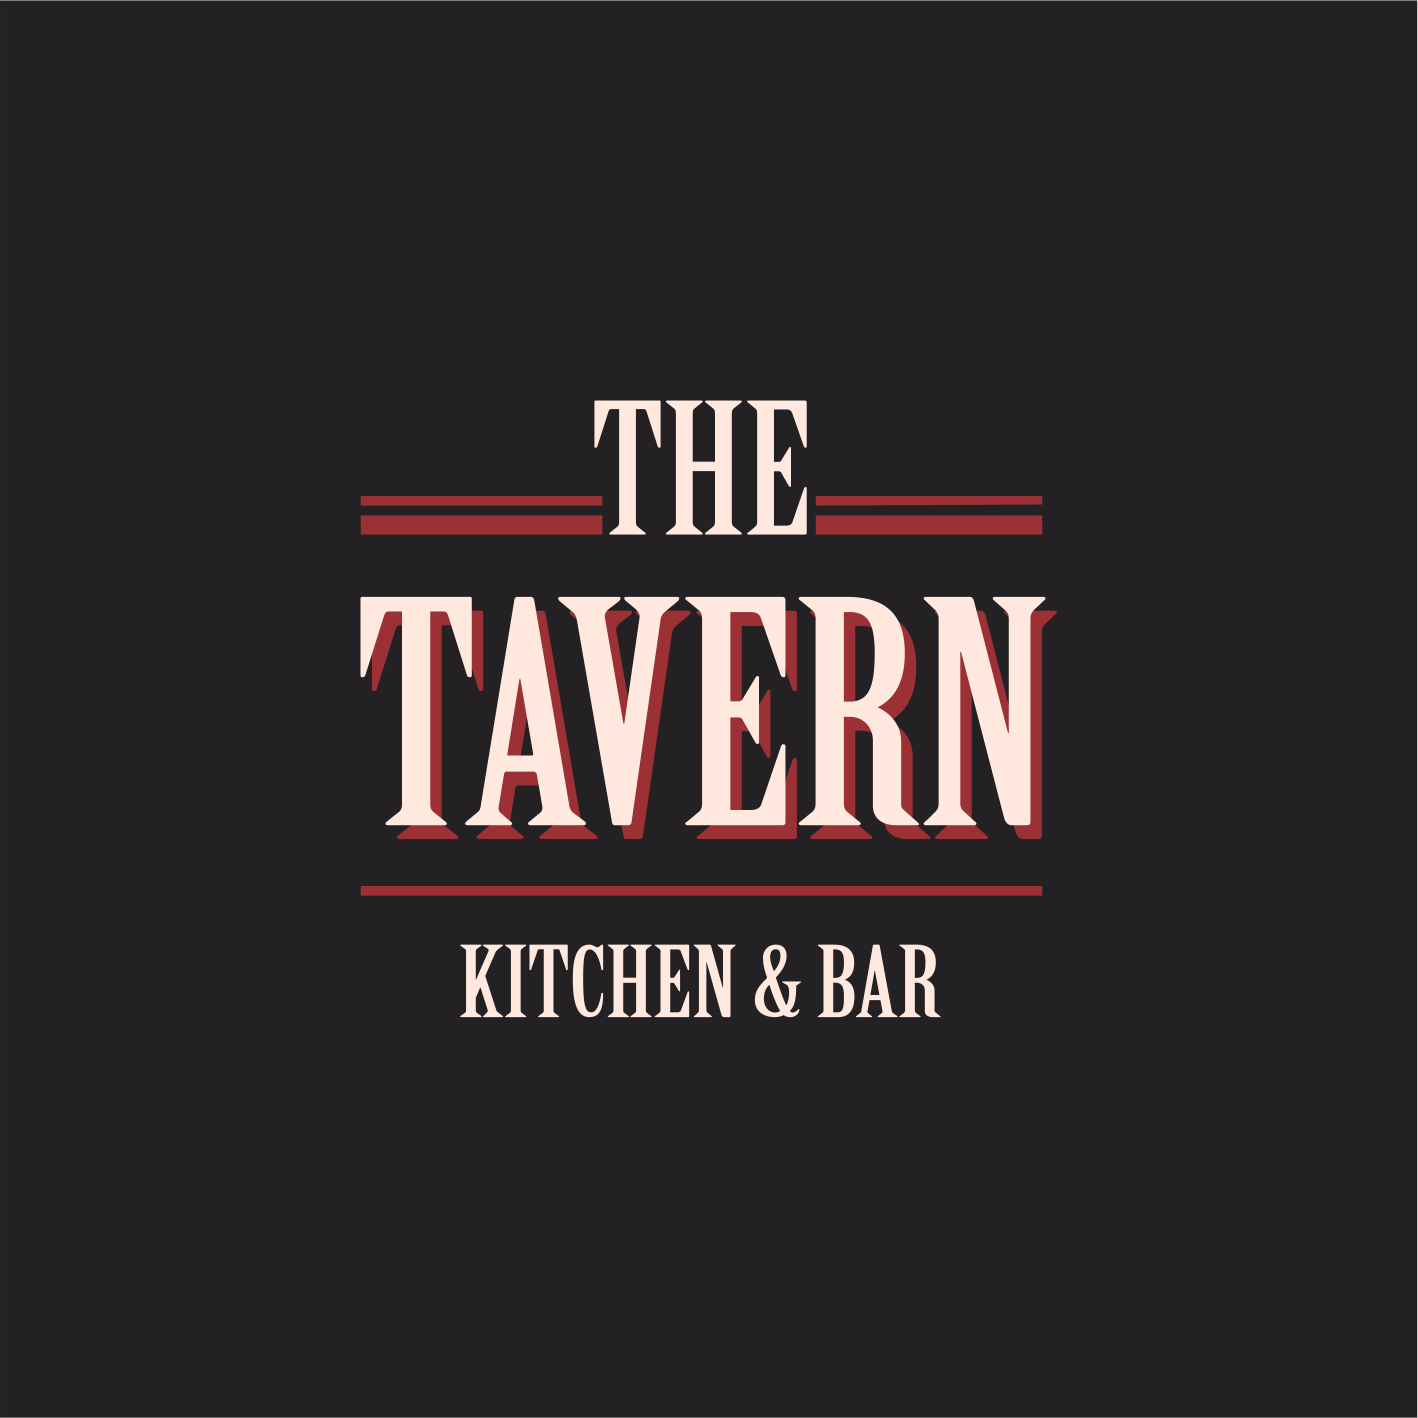 The Tavern needs a new logo to add excitment to our exciting changes